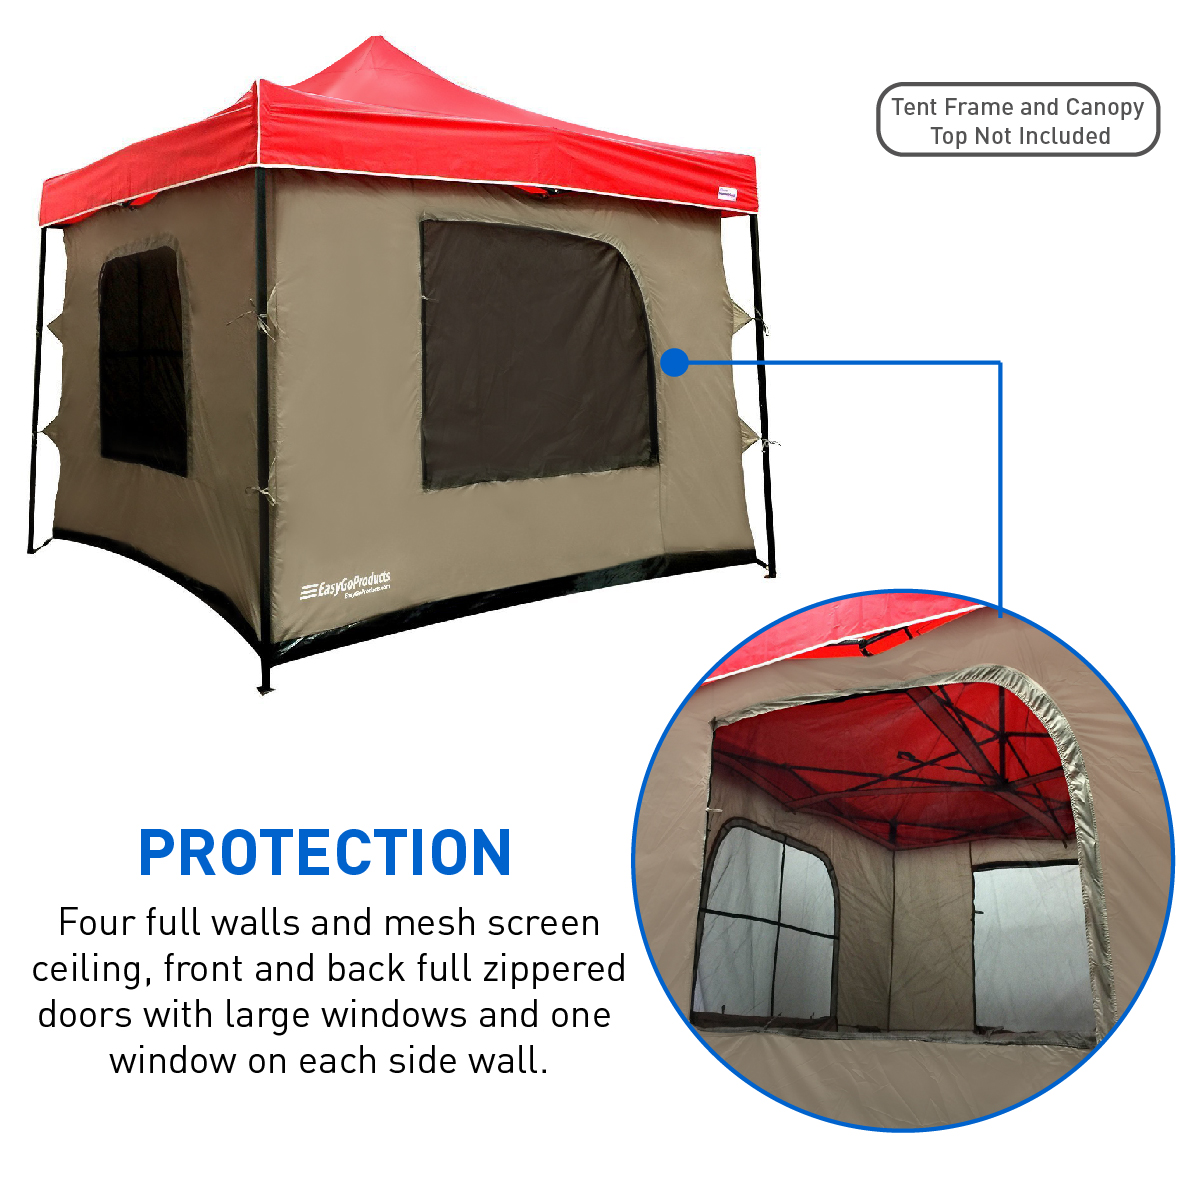 C&ing Tent attaches to any 10u0027x10u0027 Easy Up Pop Up Canopy Tent w  sc 1 st  Walmart & Camping Tent attaches to any 10u0027x10u0027 Easy Up Pop Up Canopy Tent w ...